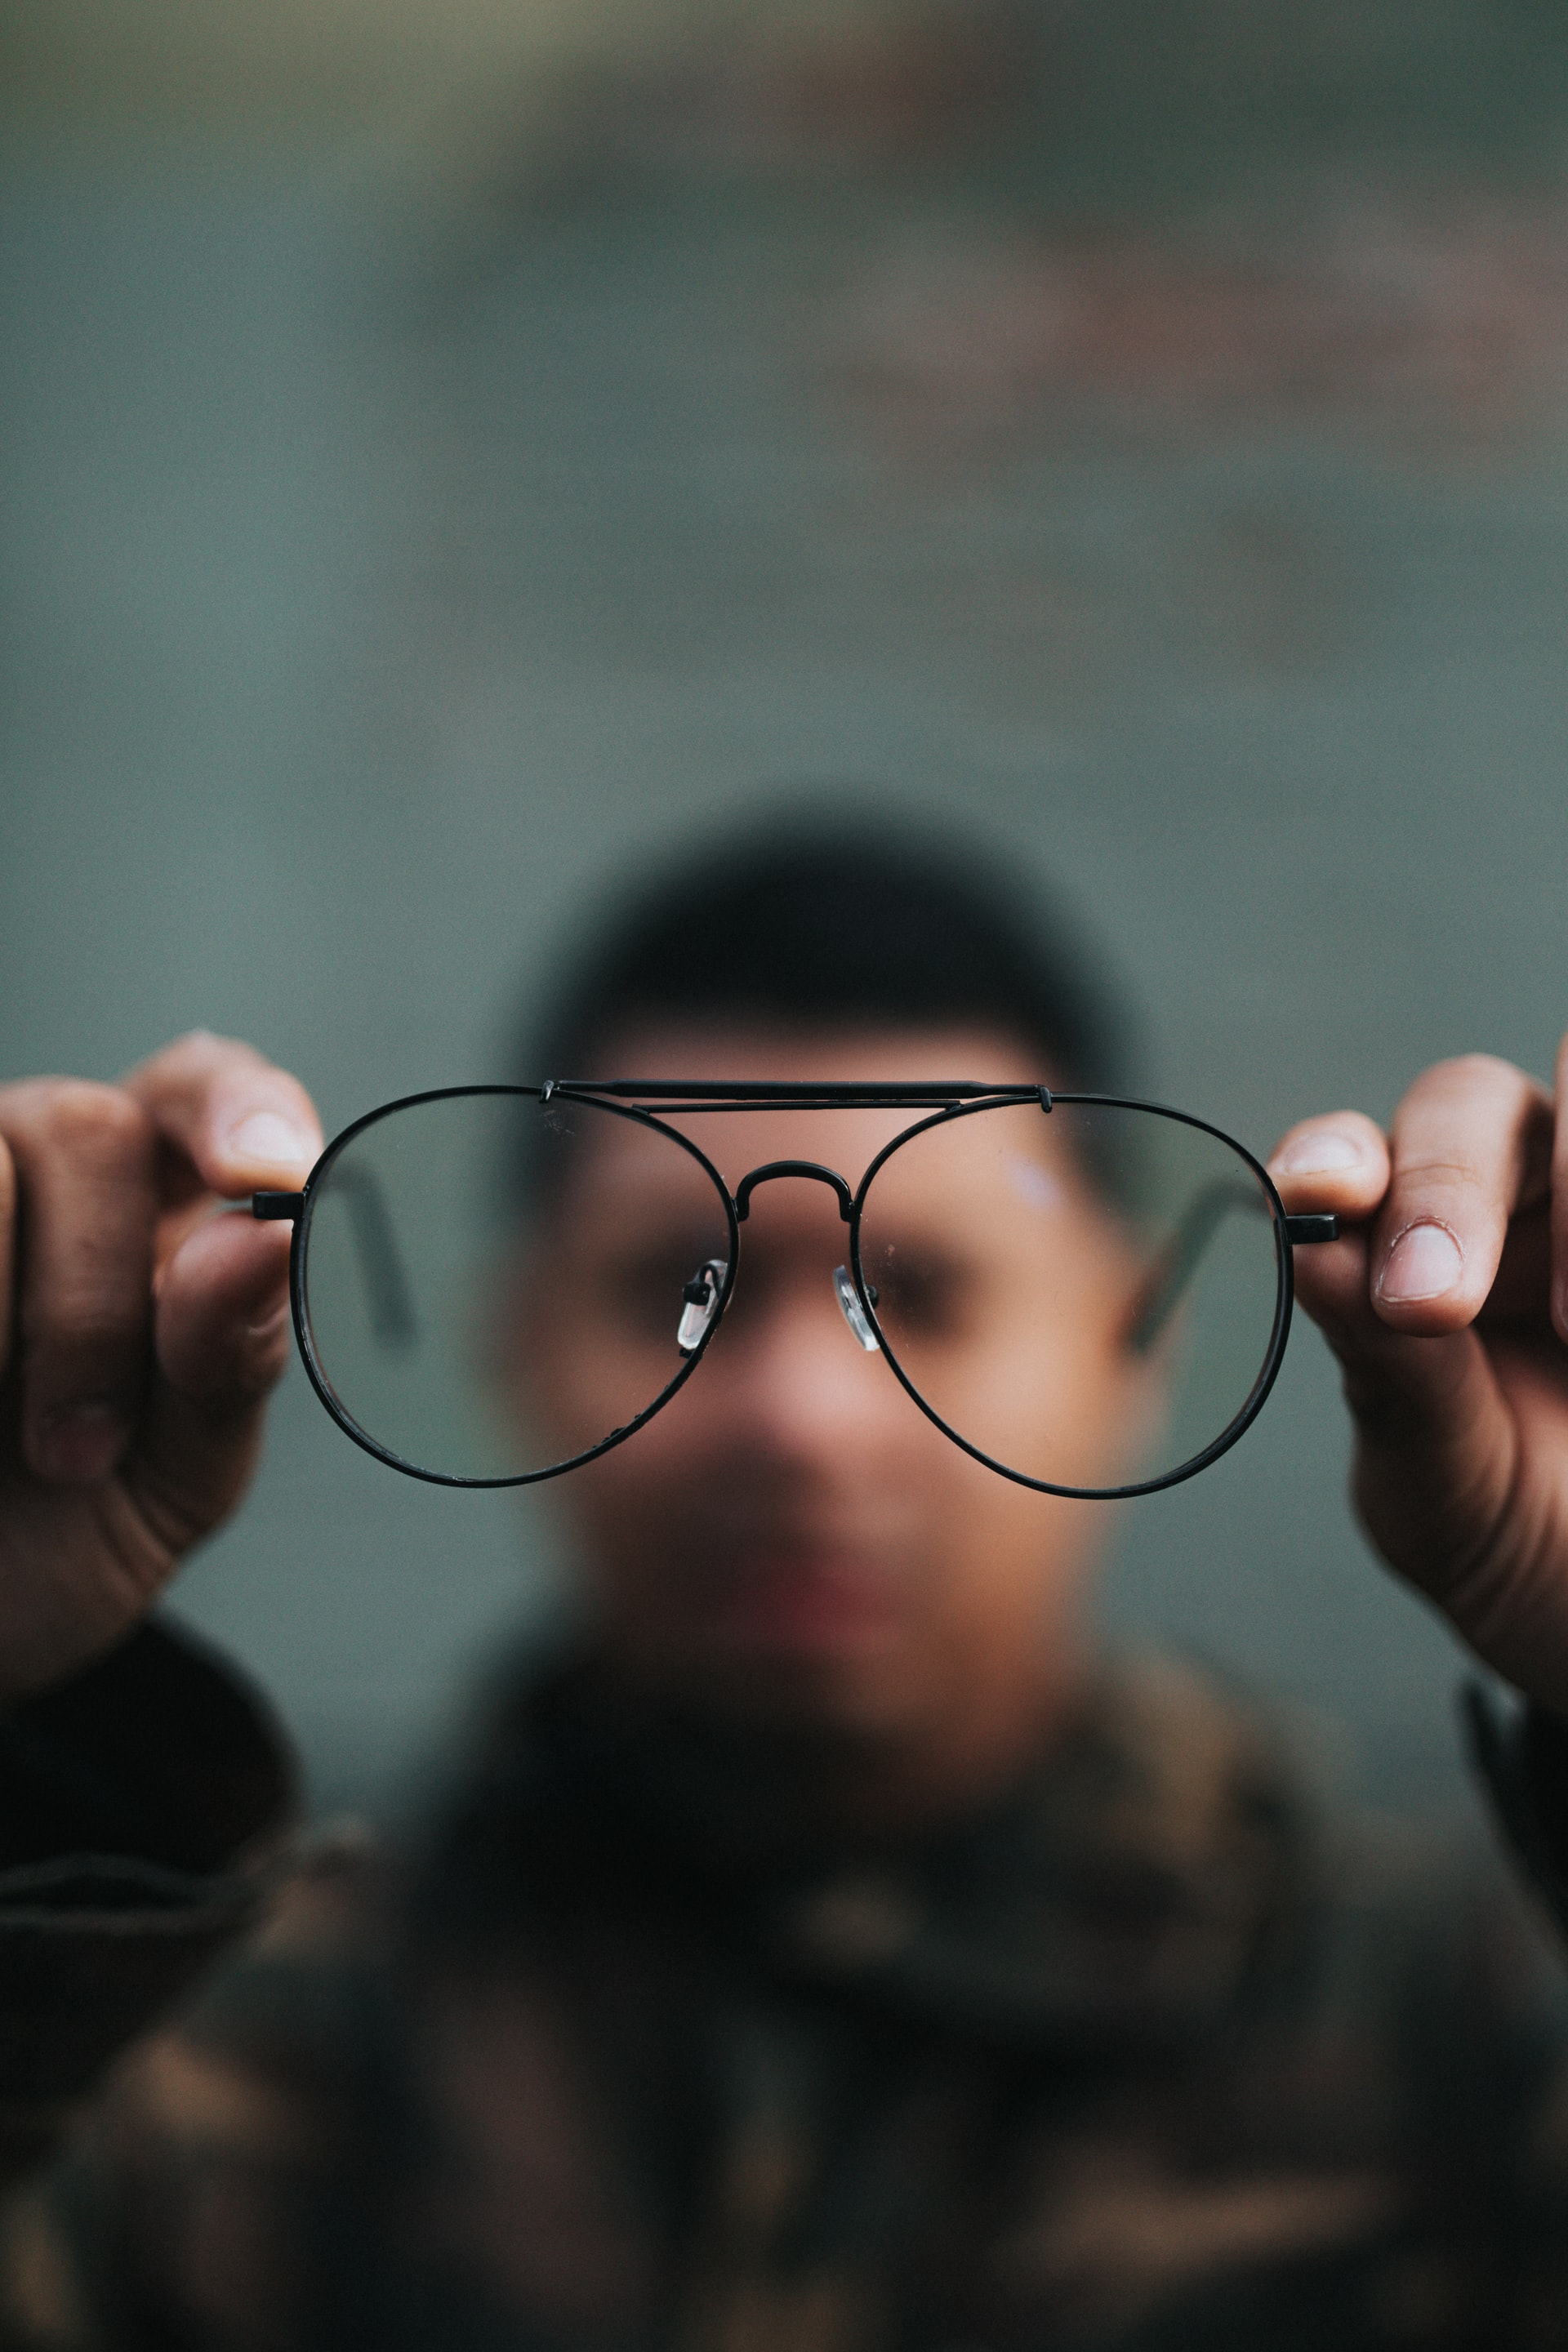 Man holding up glasses to inspect.